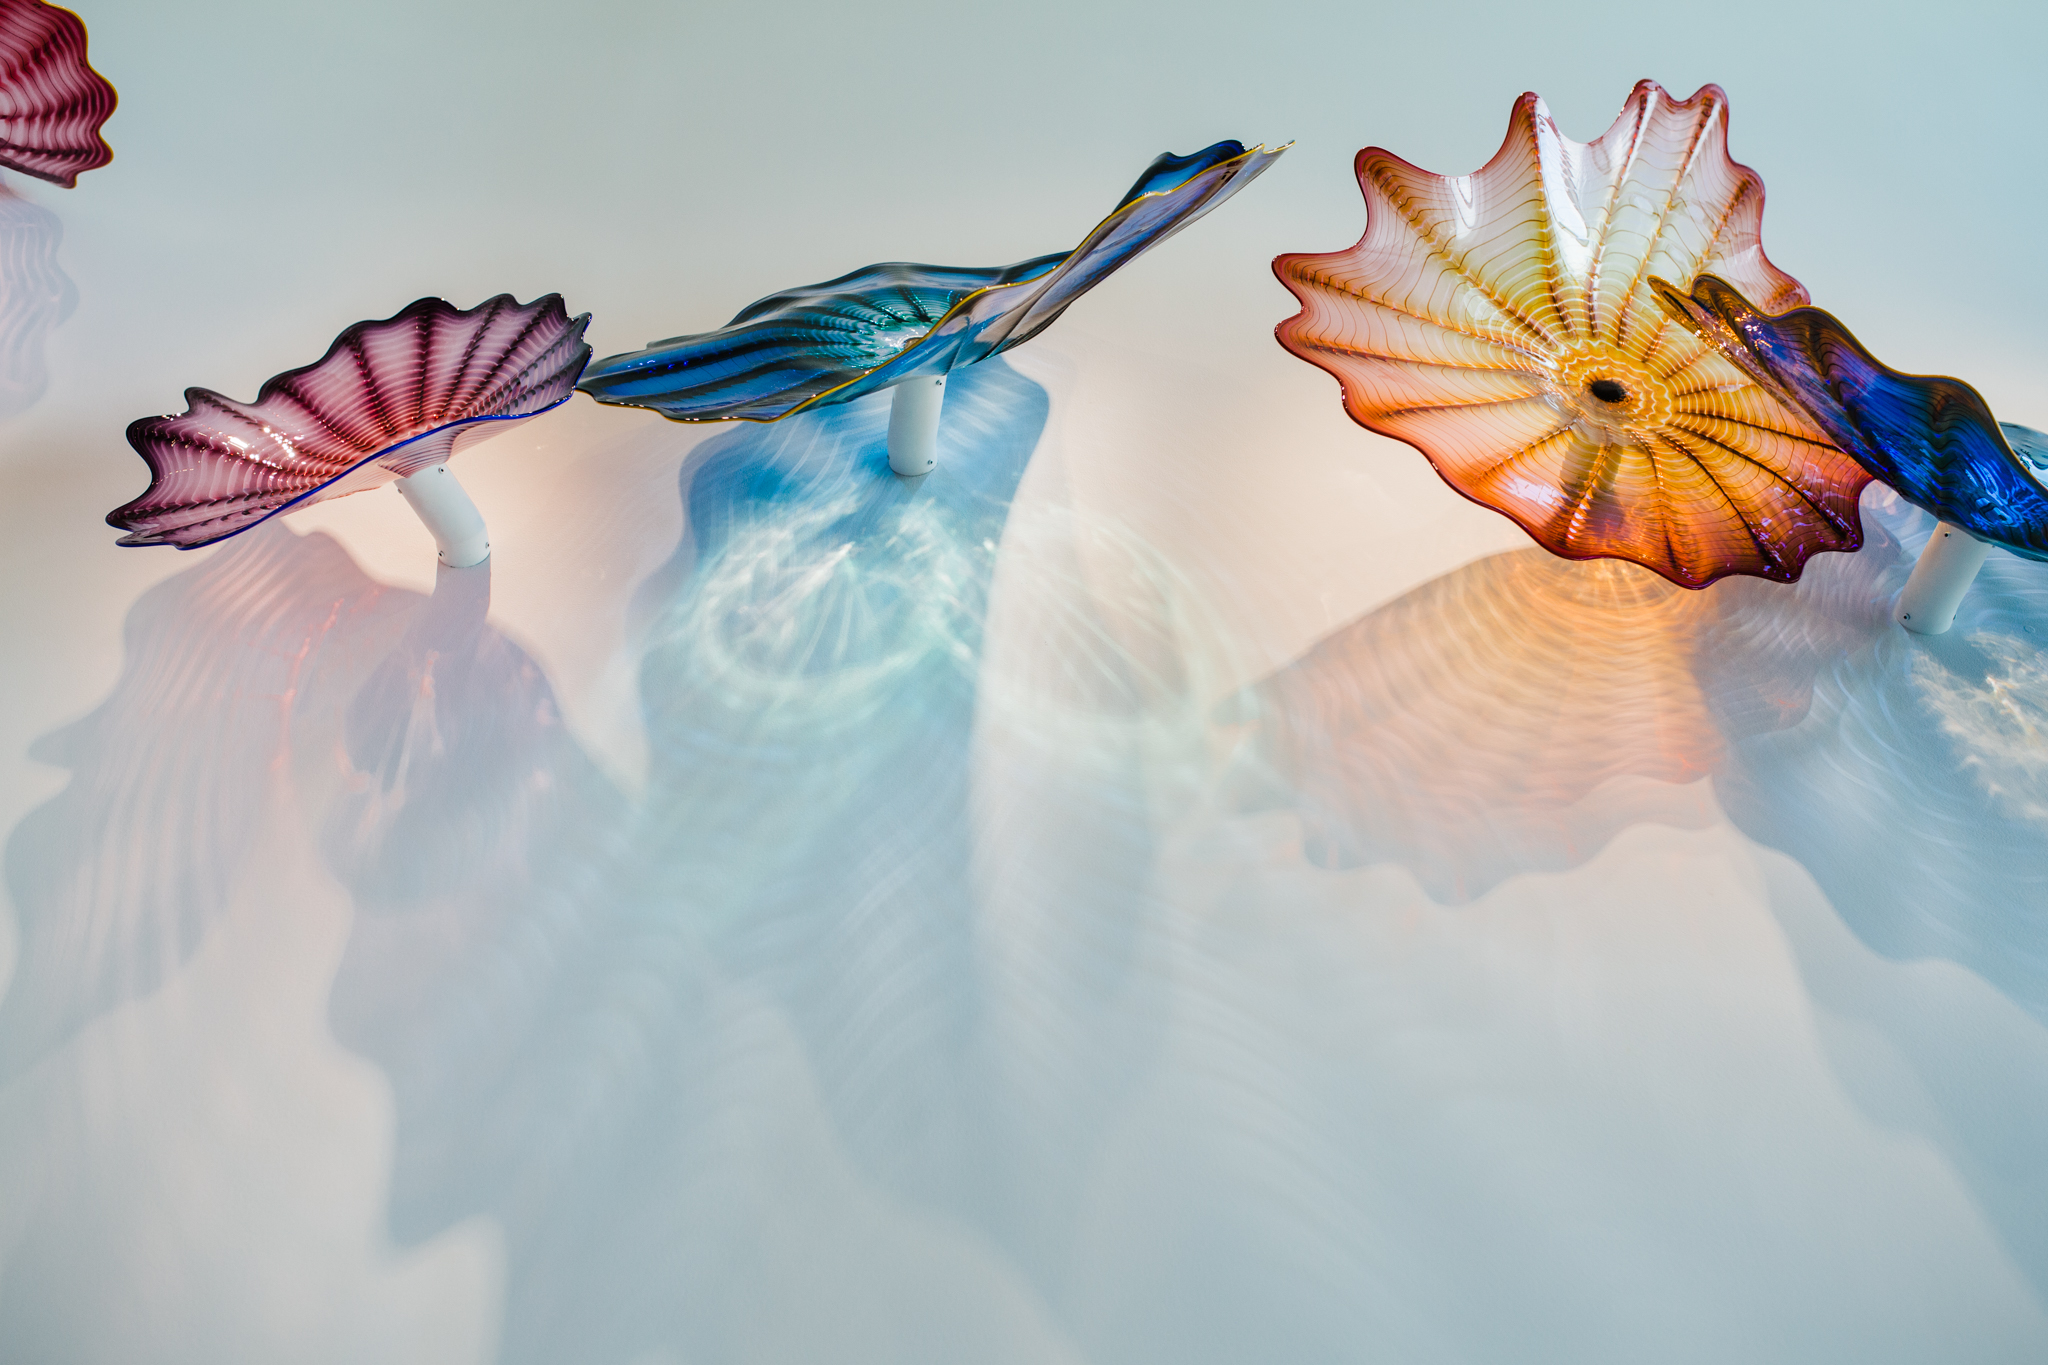 Chihuly at the Crocker Art Museum